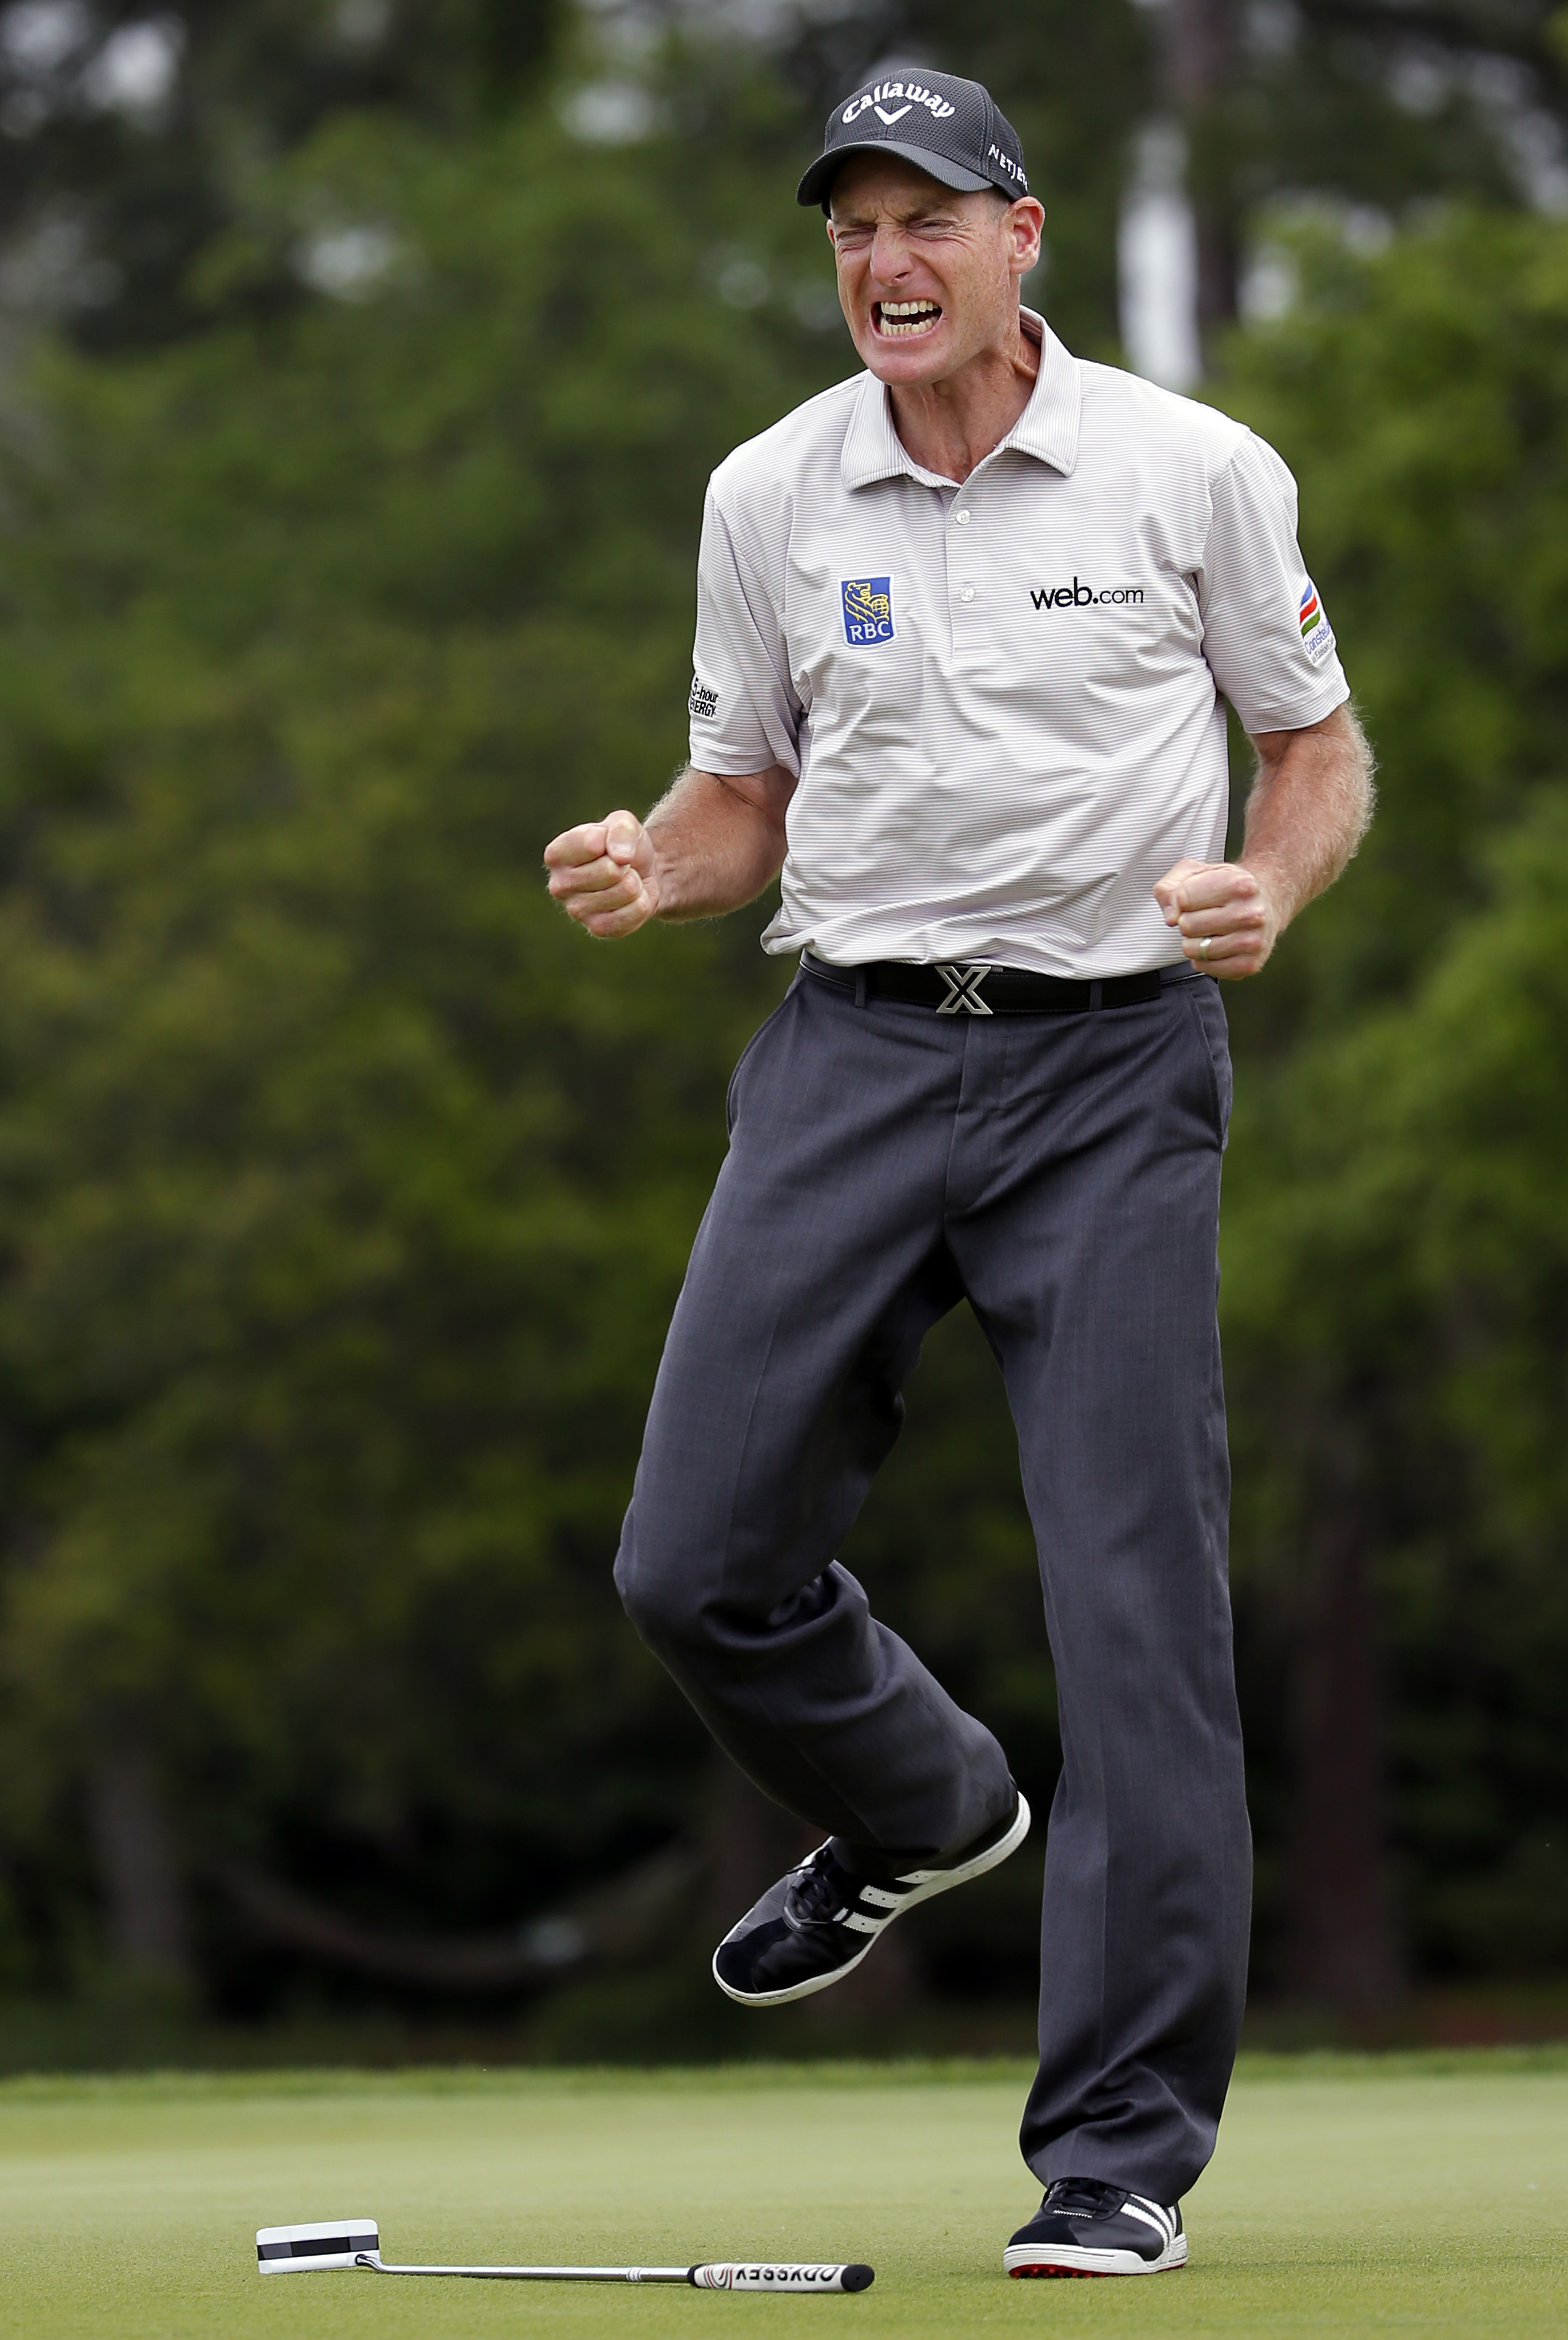 Jim Furyk reacts after his winning putt on the 17th hole against Kevin Kisner during the playoff of the RBC Heritage golf tournament in Hilton Head Island, S.C., Sunday, April 19, 2015. (AP Photo/Stephen B. Morton)